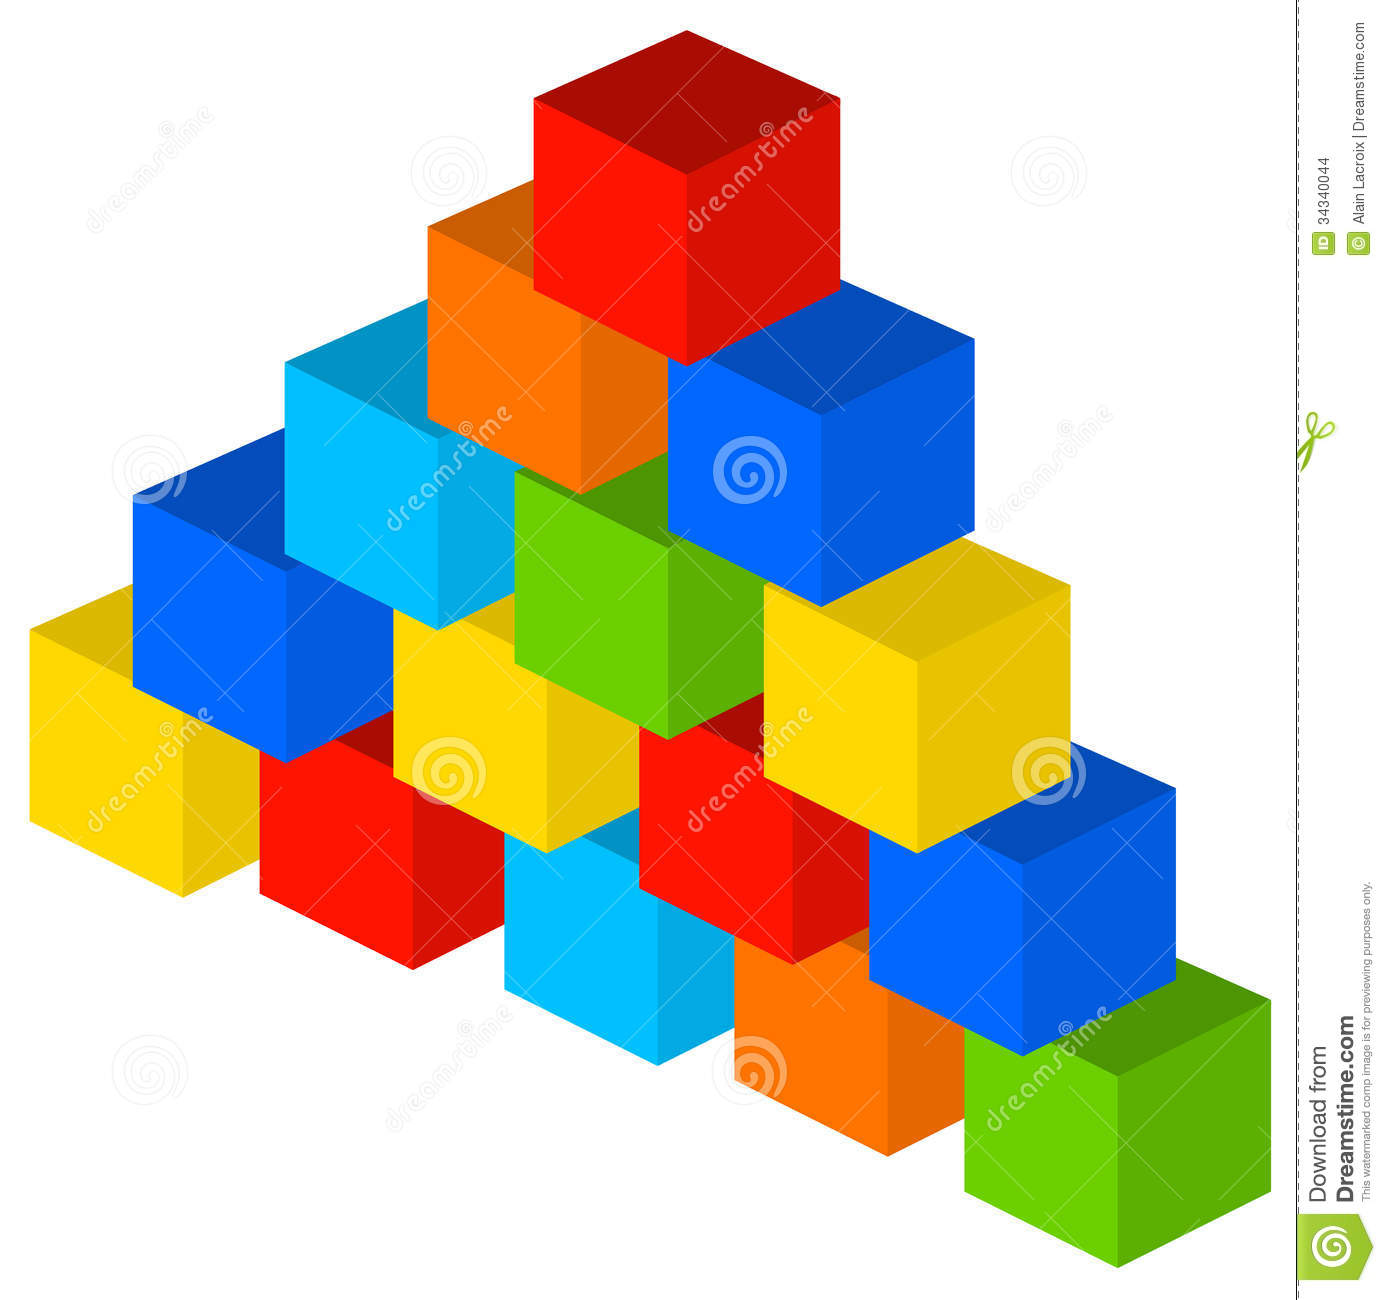 Building Blocks Of Art : Blocks clipart suggest